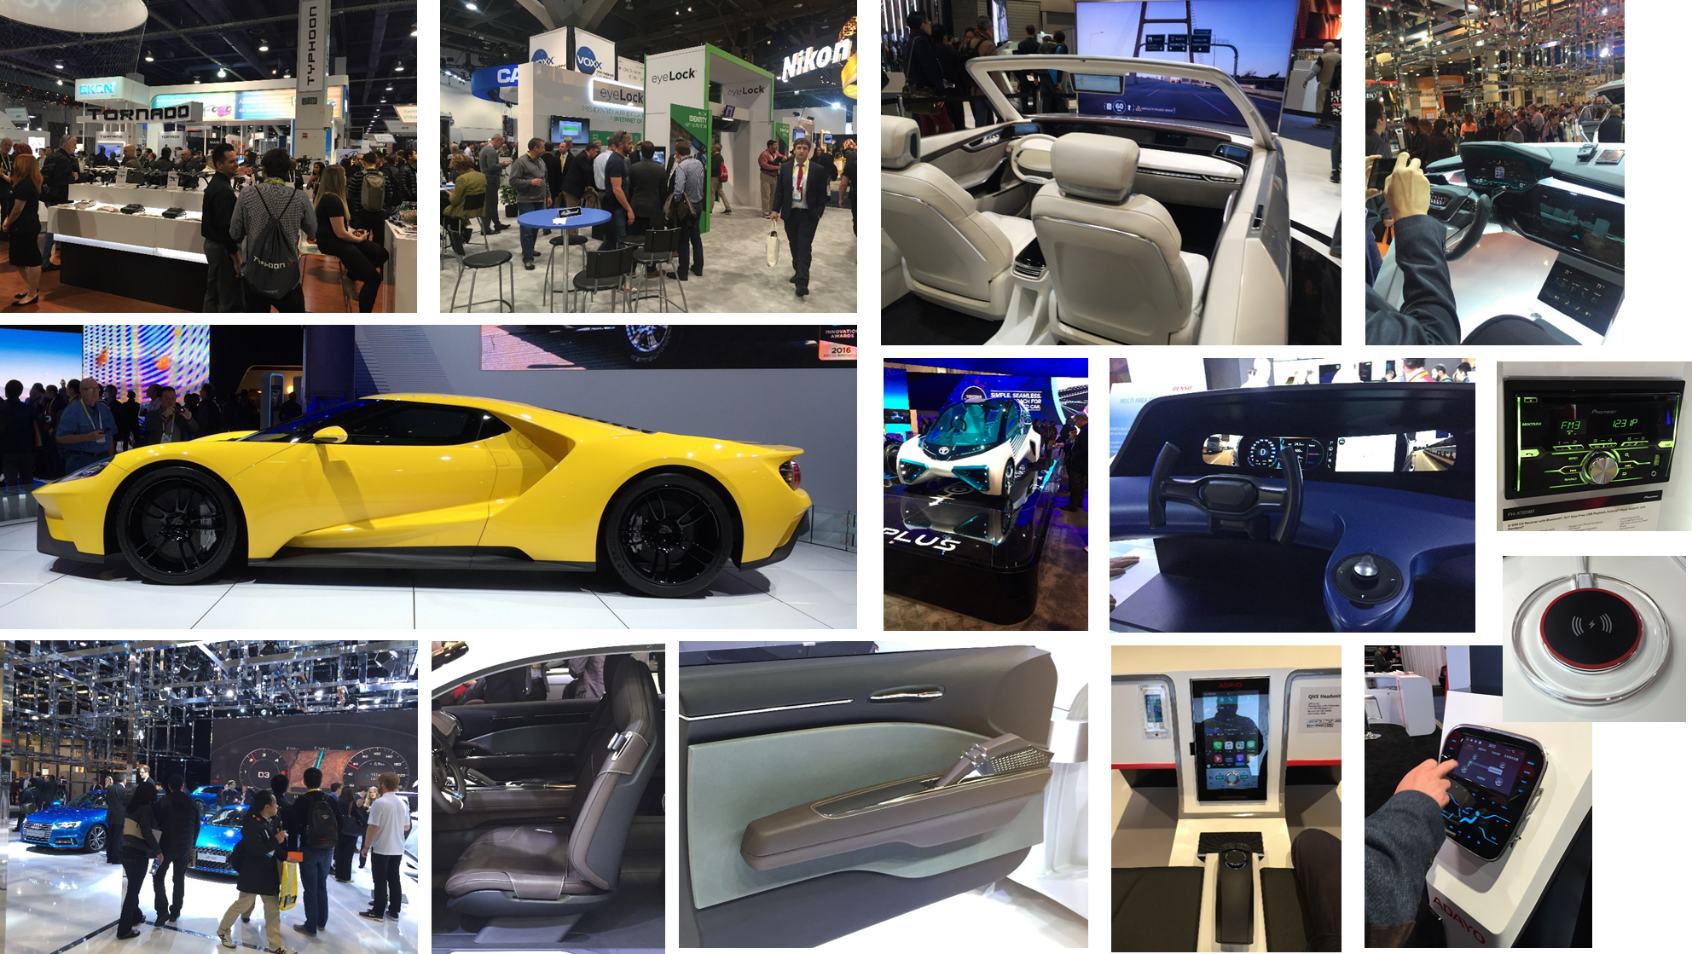 2016 CES HMI Innovations Report Out